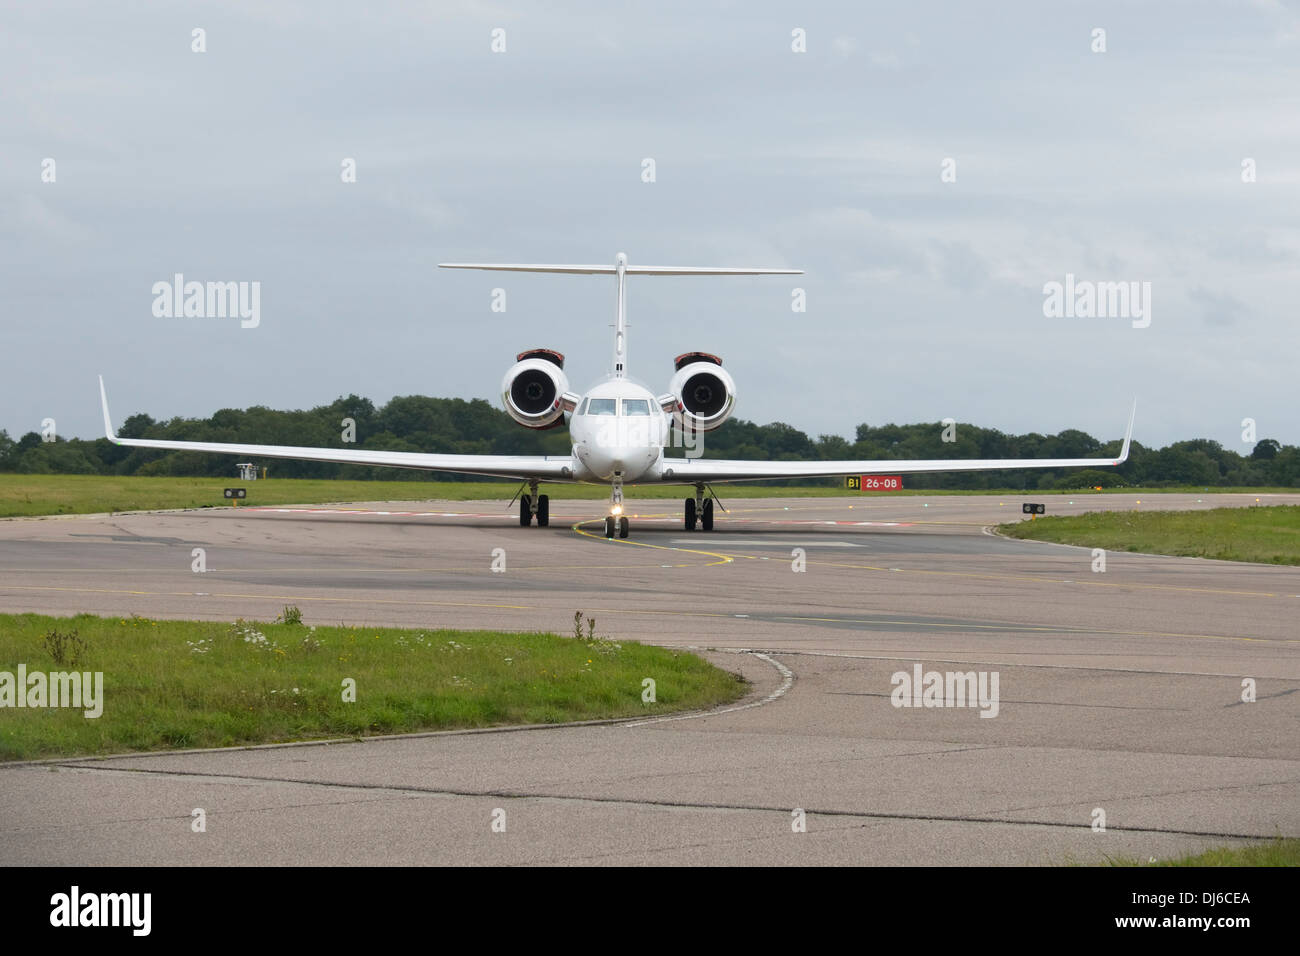 Gulfstream GV-SP (G550) taxiing on taxiway - Stock Image